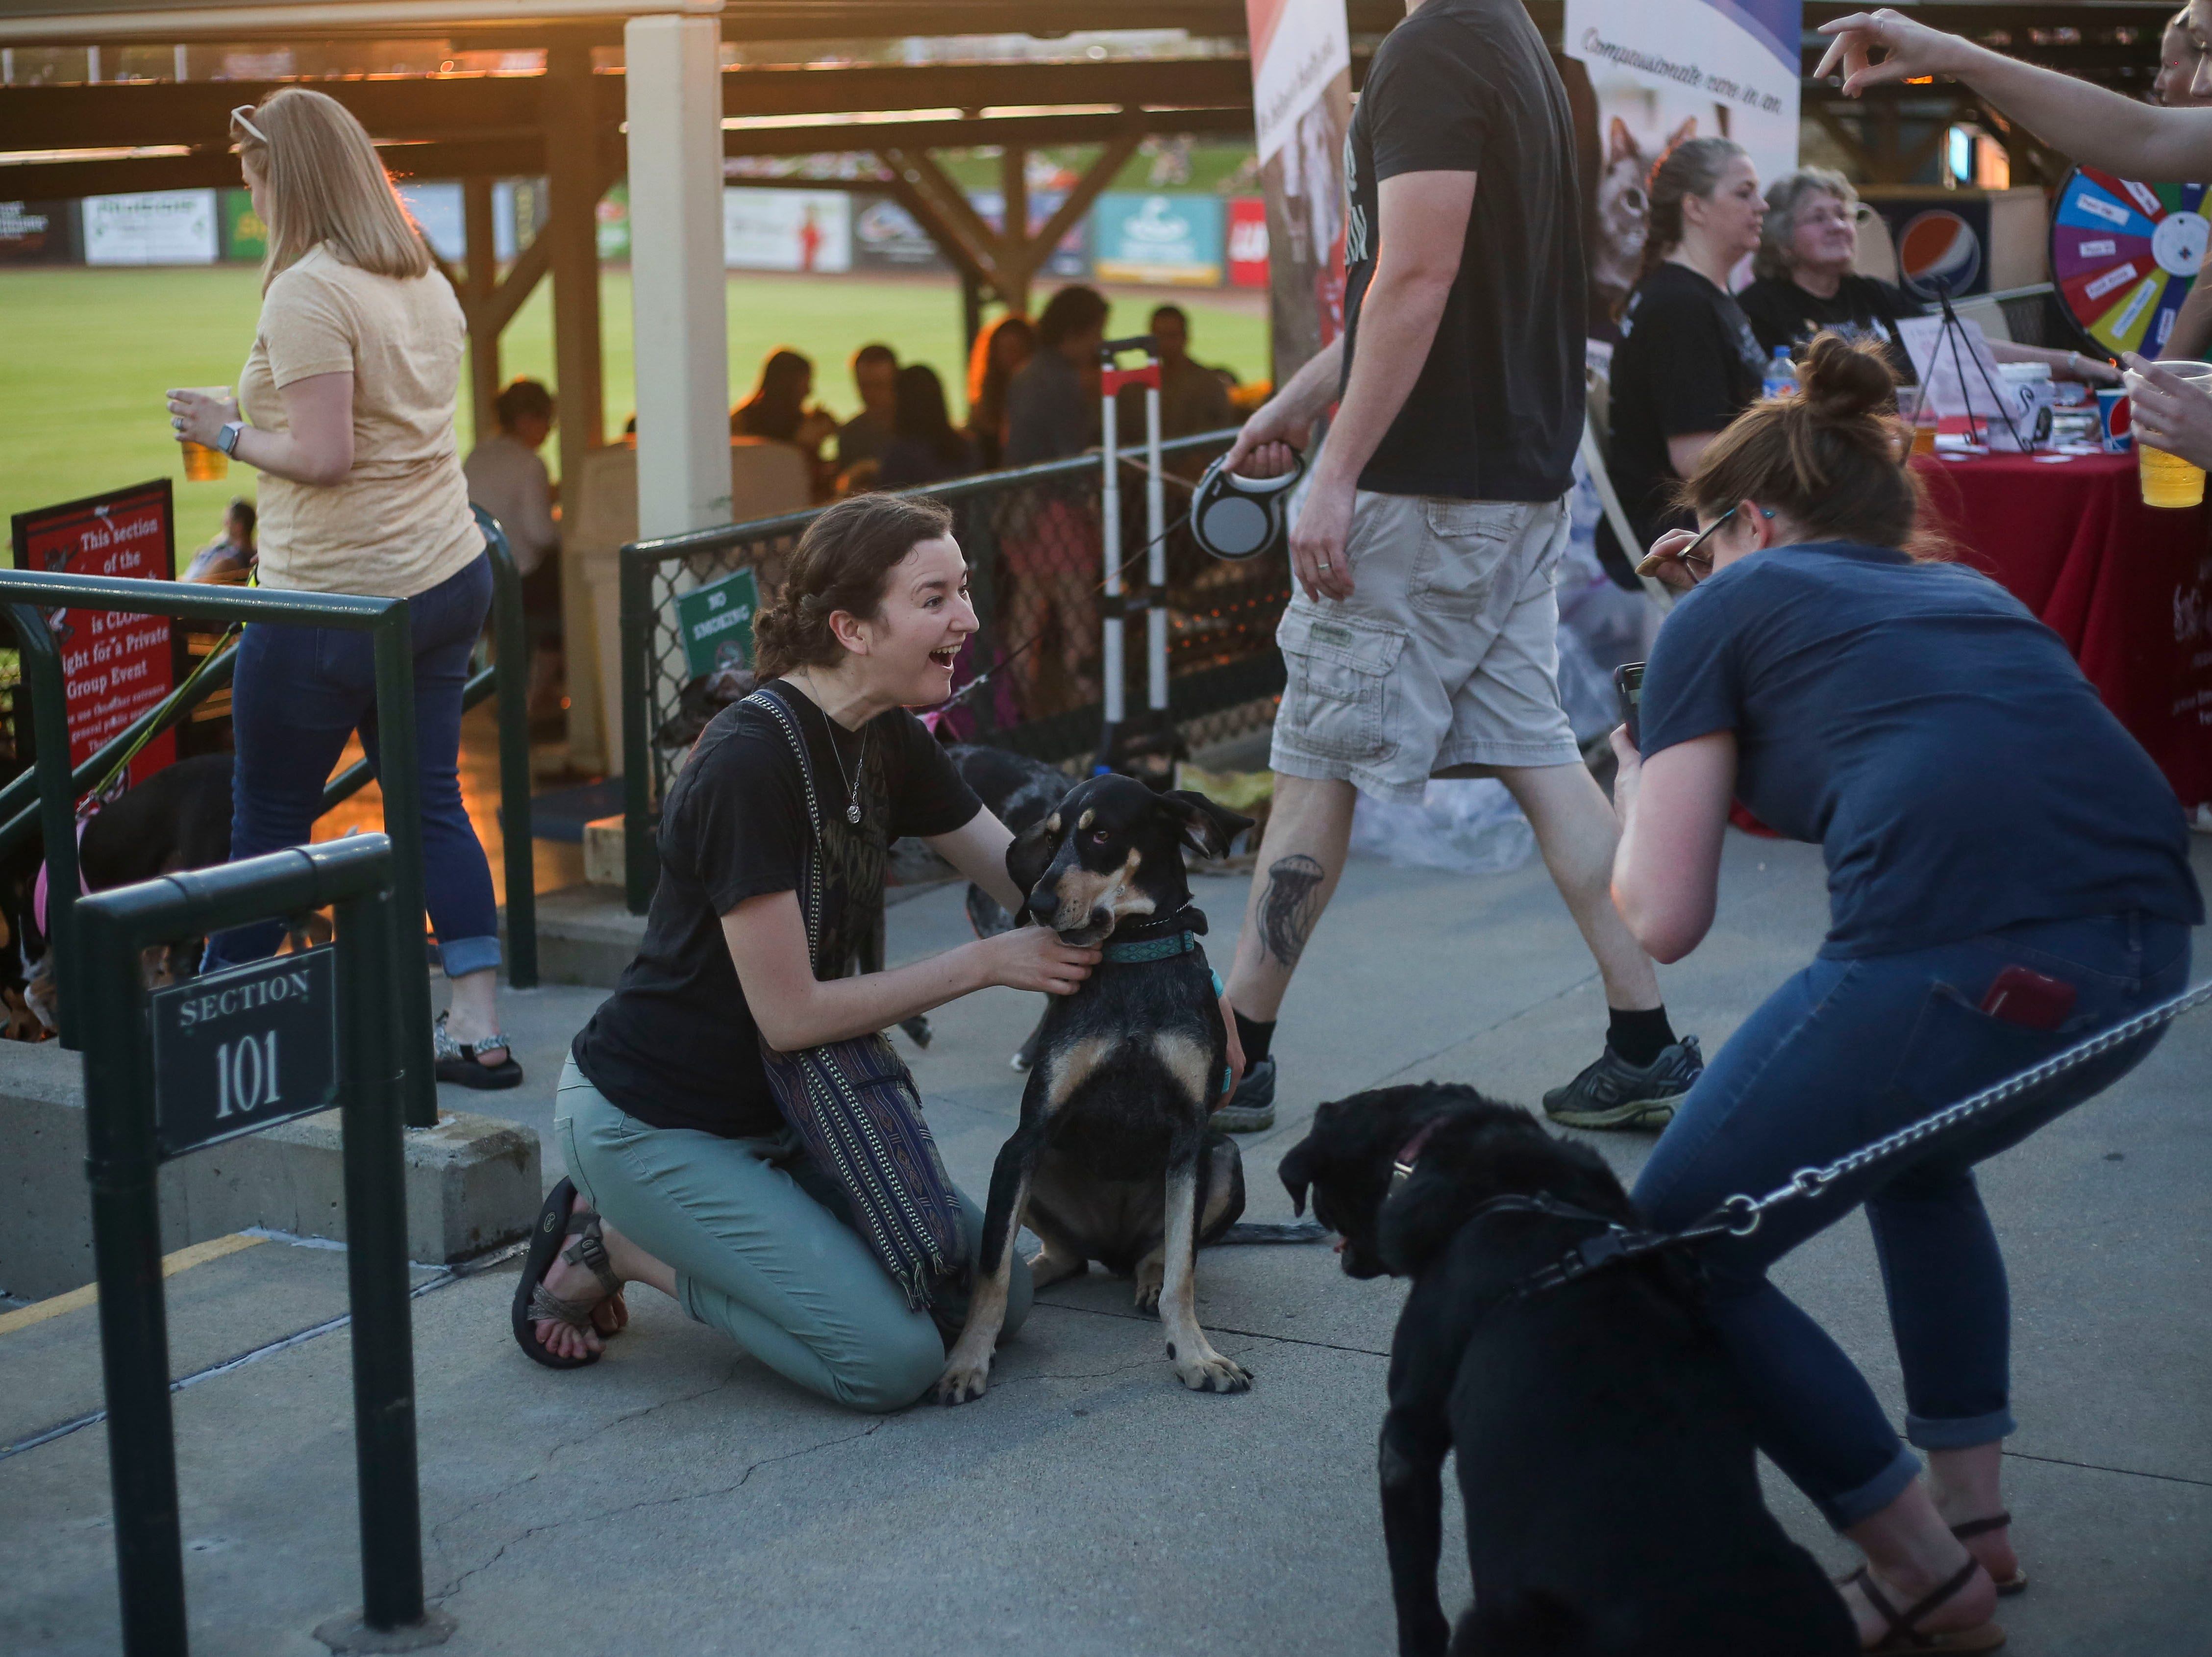 Becca Harpring tries to get her coonhound Biridie to look at a camera for a photo during the Louisville Bats v. Syracuse Mets game during Dog Day Nights at Louisville Slugger Field in downtown Louisville, Ky. on Tuesday, May 7, 2019.